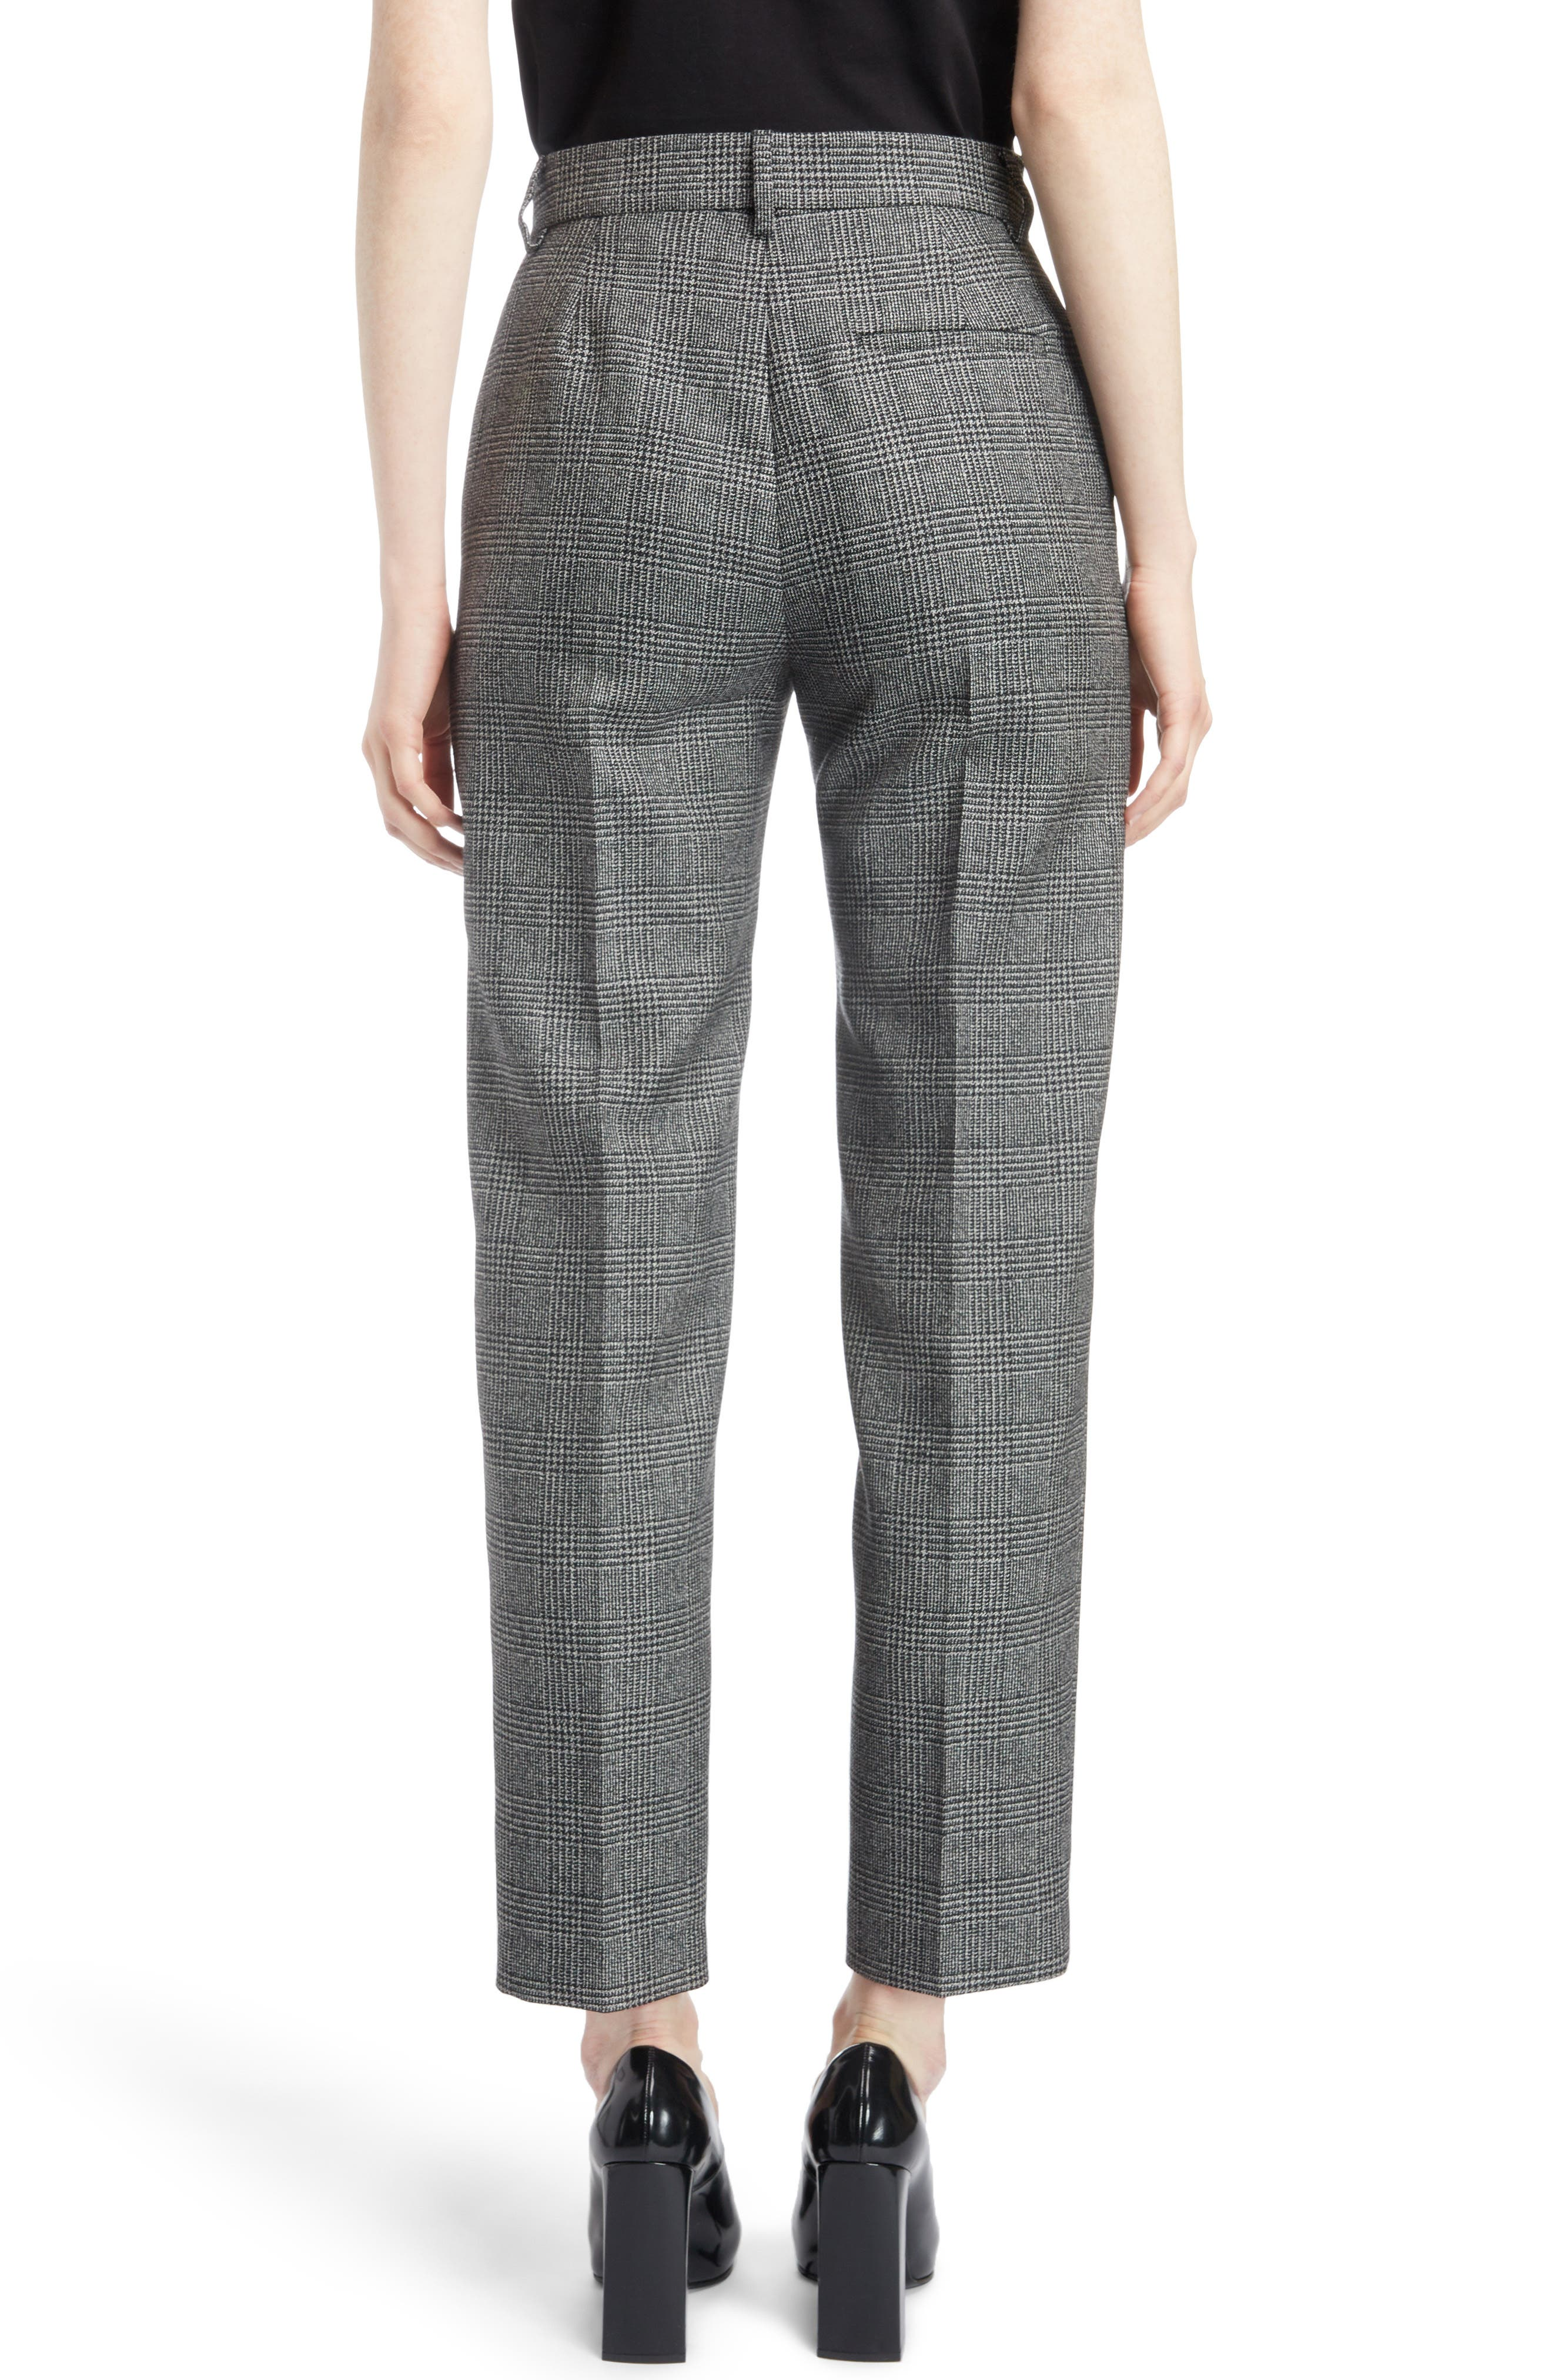 Prince of Wales Wool Carrot Trousers,                             Alternate thumbnail 2, color,                             1070-BLACK/ WHITE